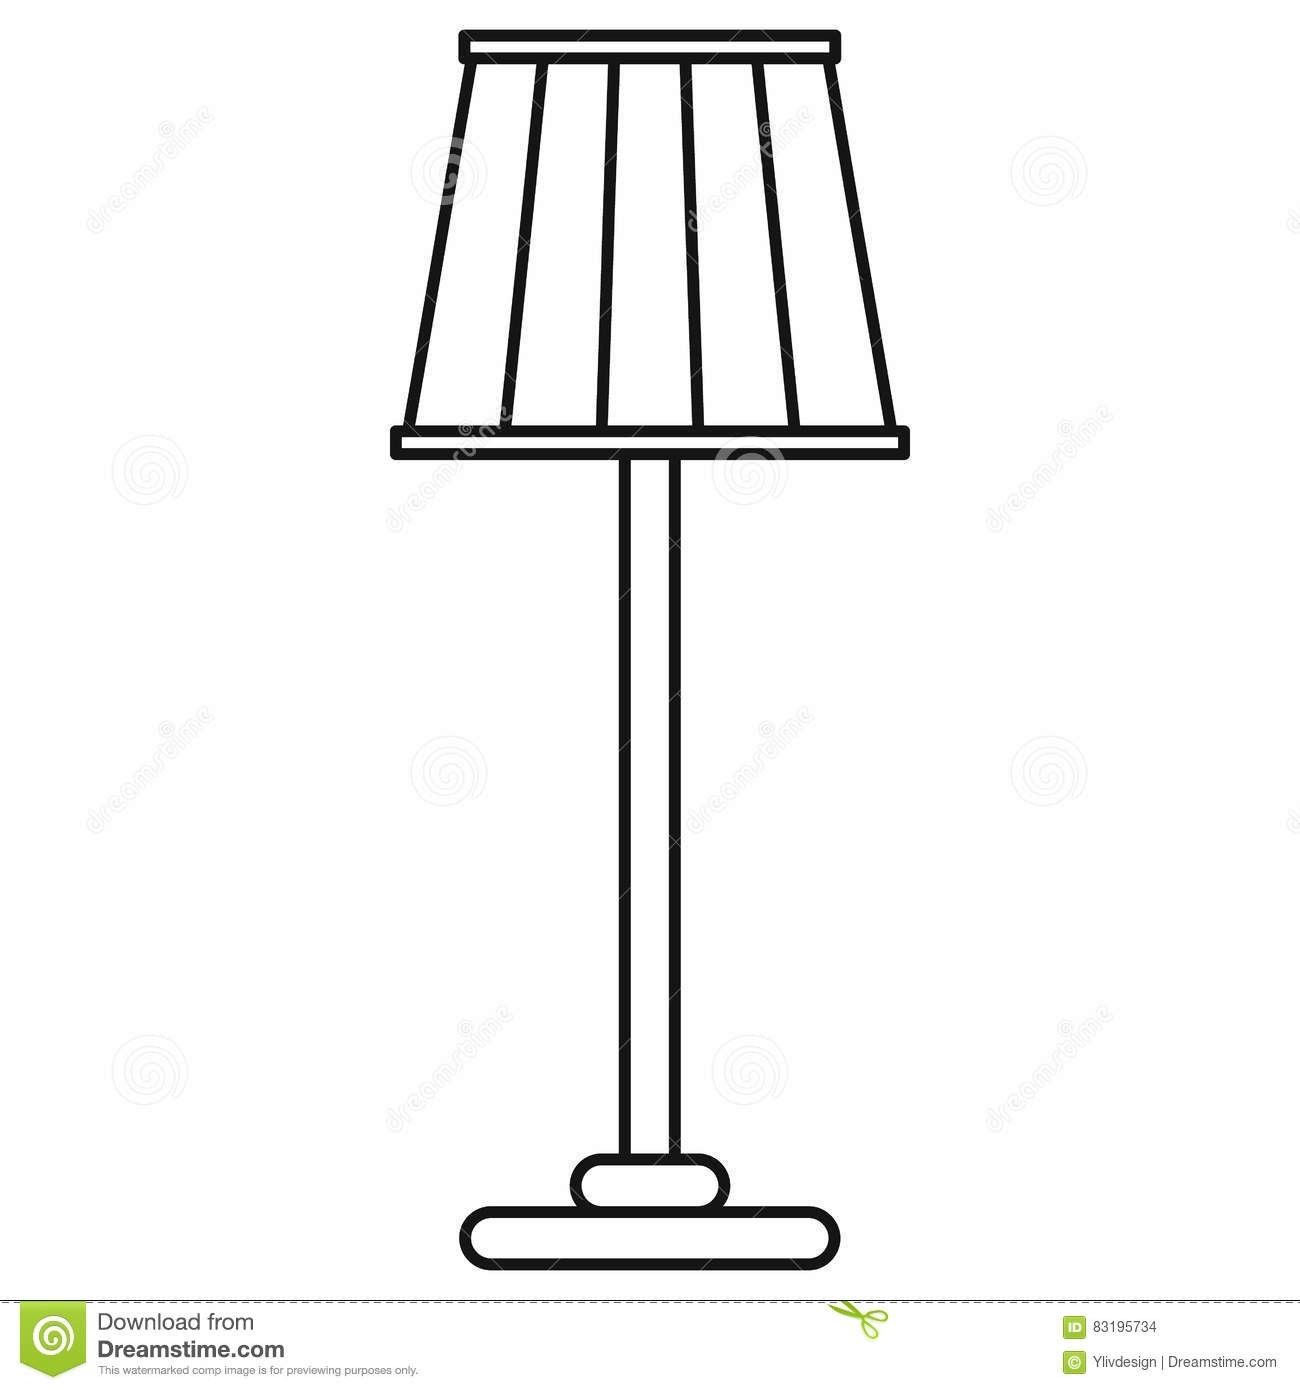 Floor Lamp Icon In Outline Style Stock Vector Illustration Of With Floor Lamp Clipart Black And Black And White Furniture Clipart Black And White Floor Lamp